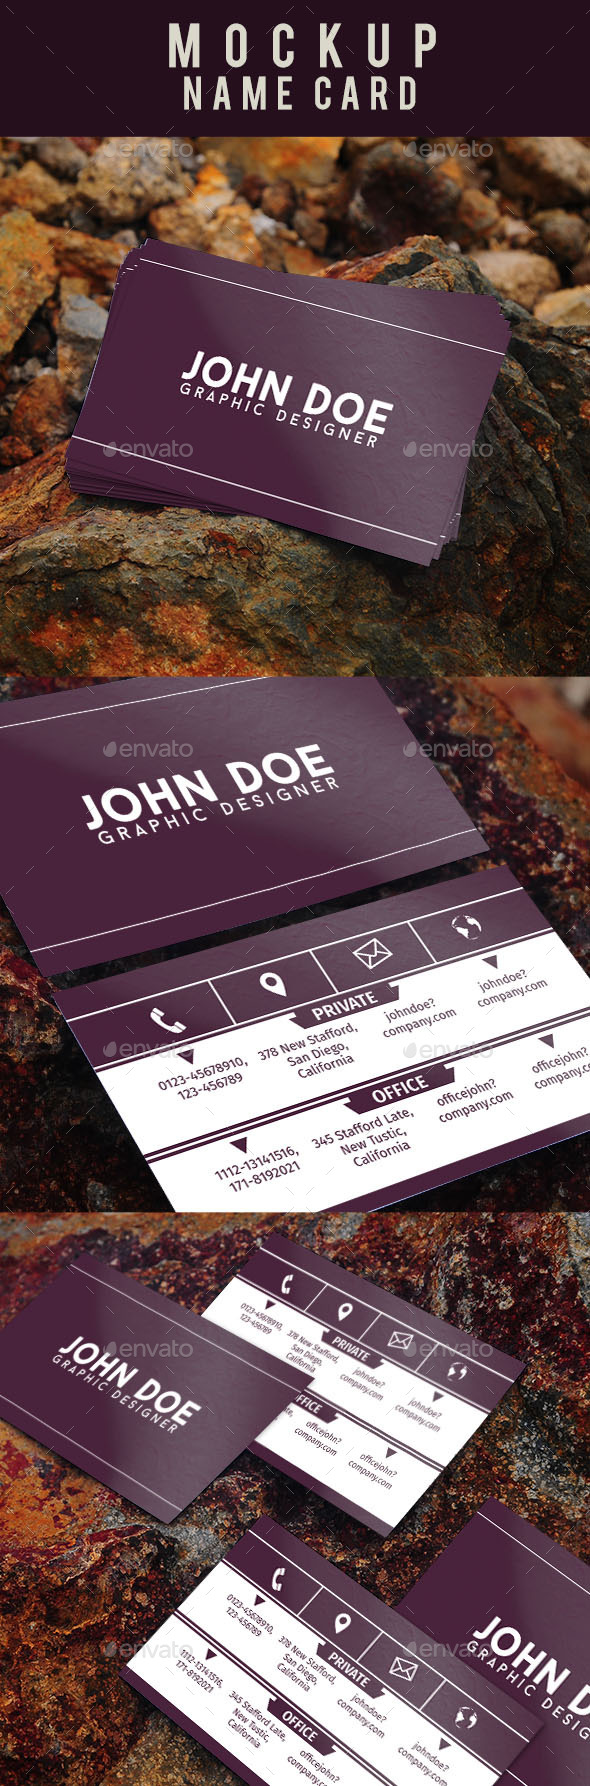 GraphicRiver Mockup Name Card 11877463